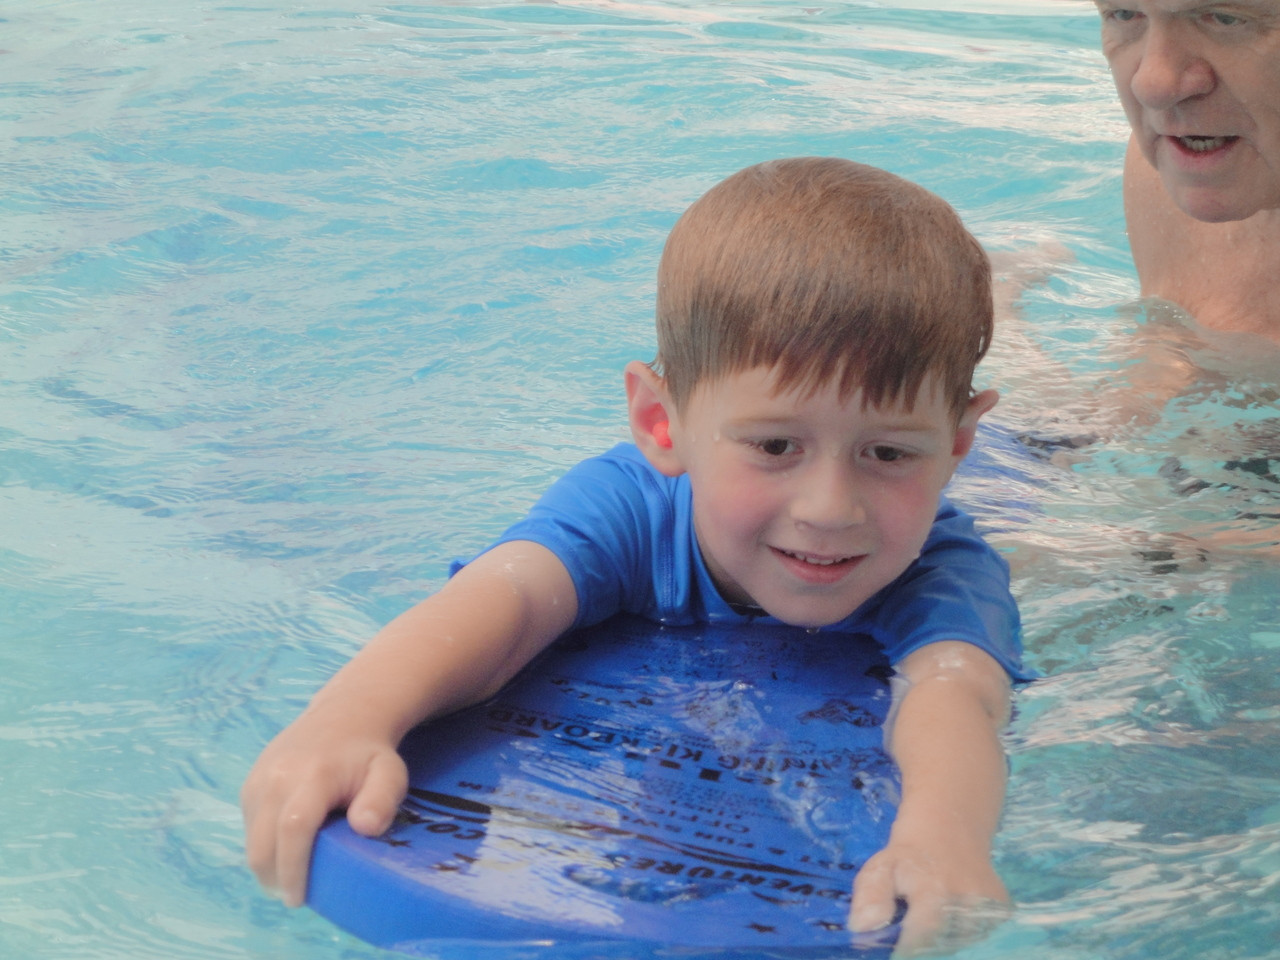 Designed to encourage children to use straight arms to hold on, which is excellent practice for actual arm strokes in swimming. The Deluxe Kickboard gives the children the confidence they need to progress to the next level - the Speed Board.